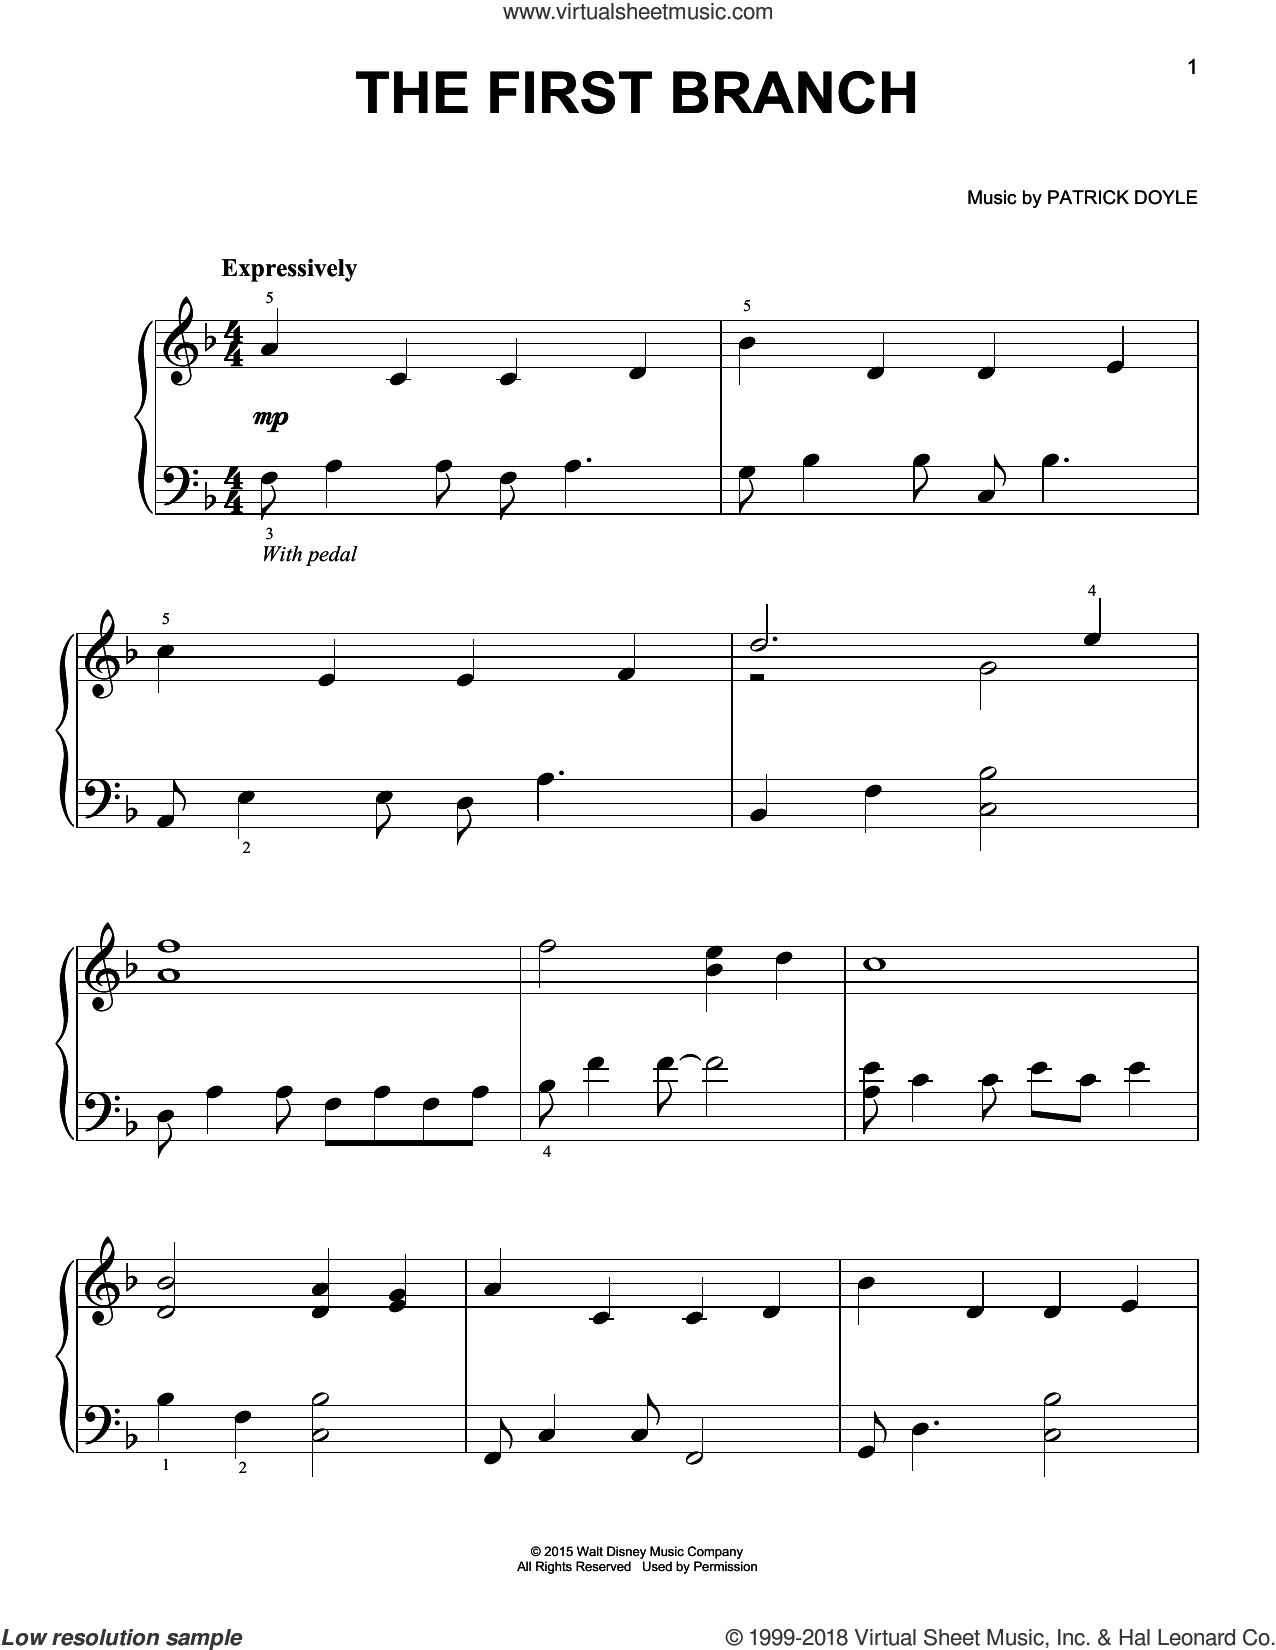 The First Branch sheet music for piano solo by Patrick Doyle, easy skill level